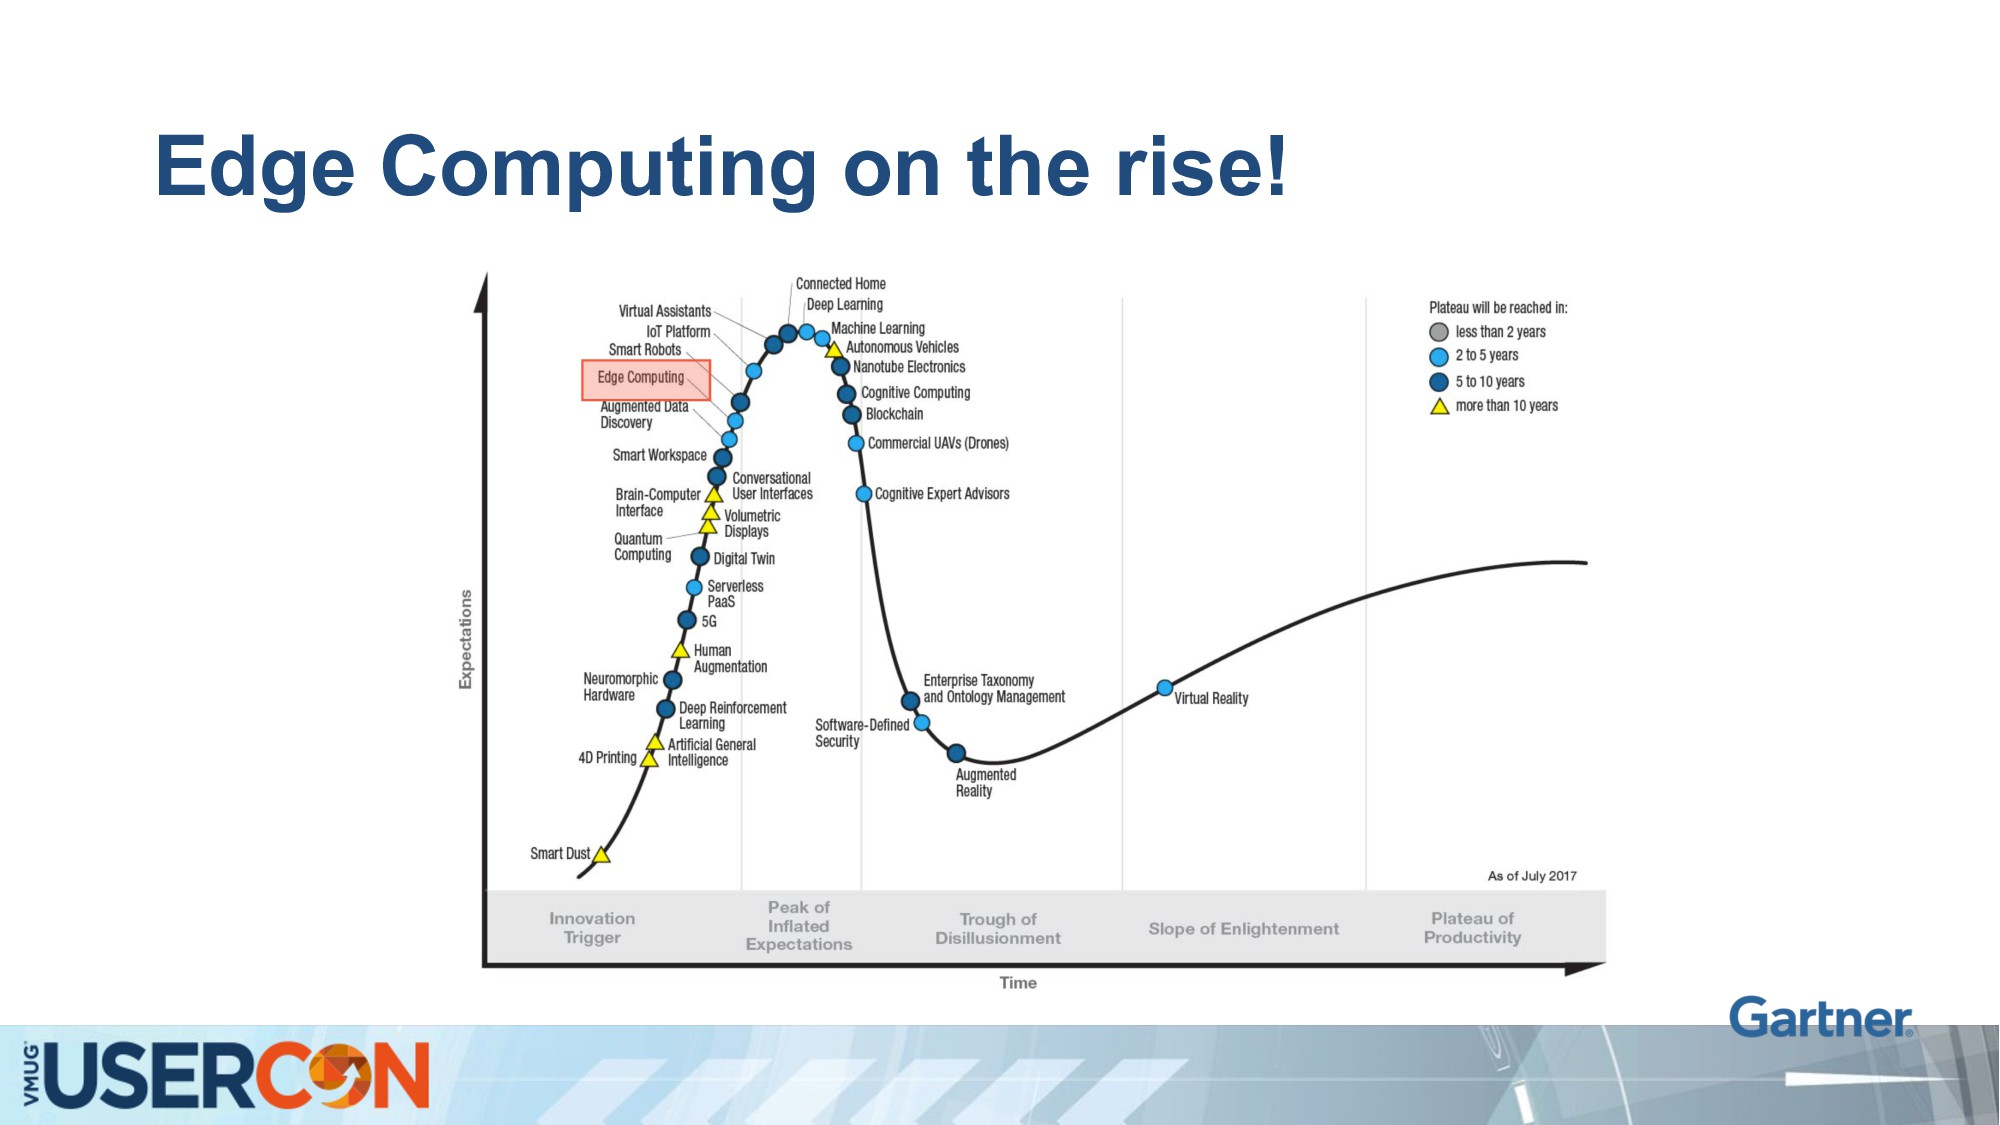 Edge Computing on the rise!